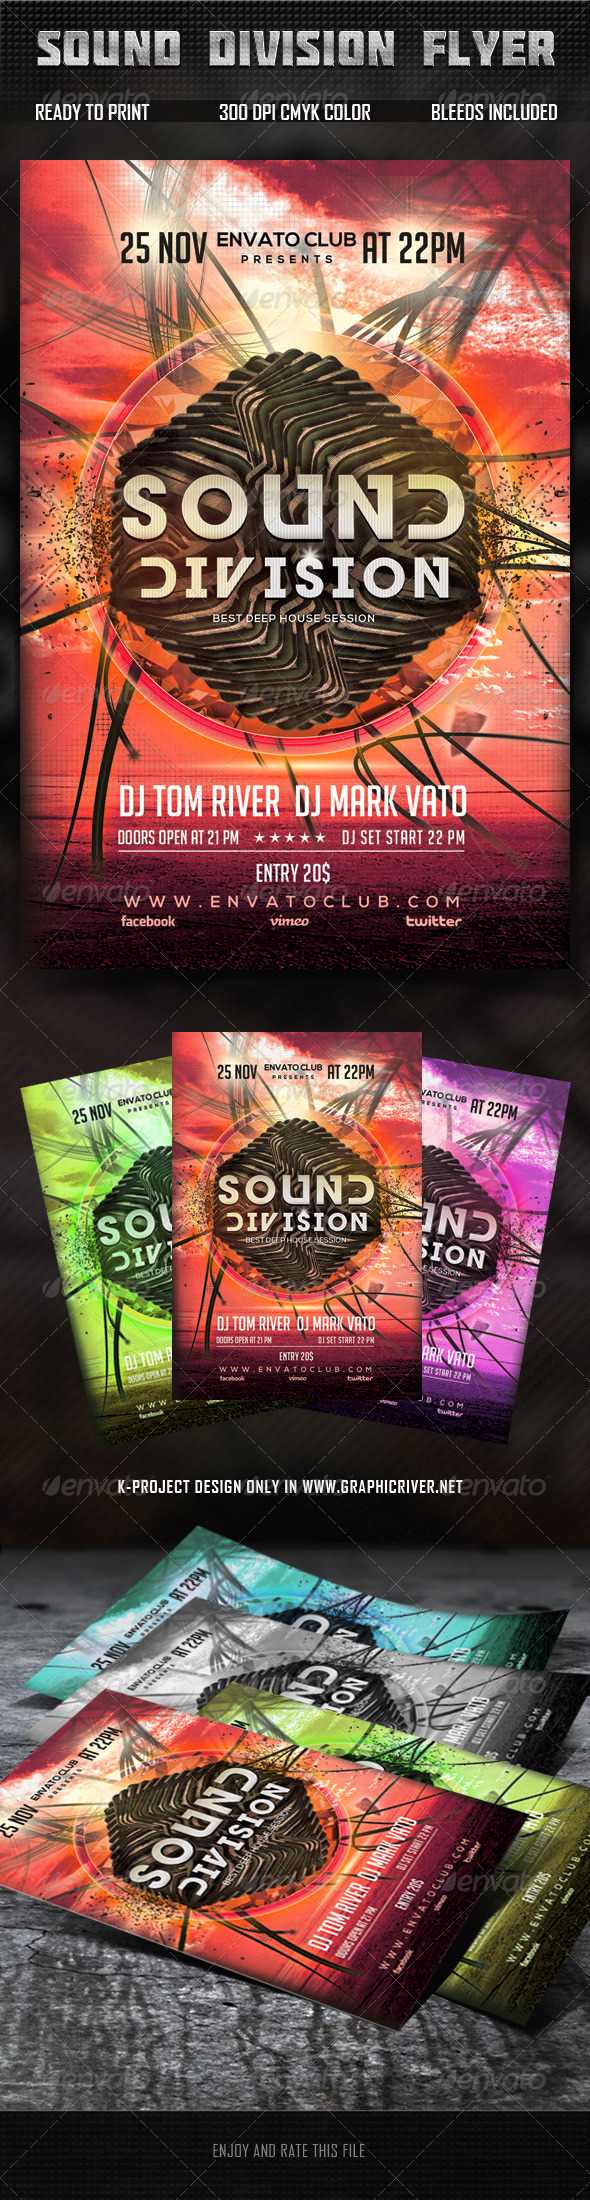 GraphicRiver Sound Division Flyer 5858779